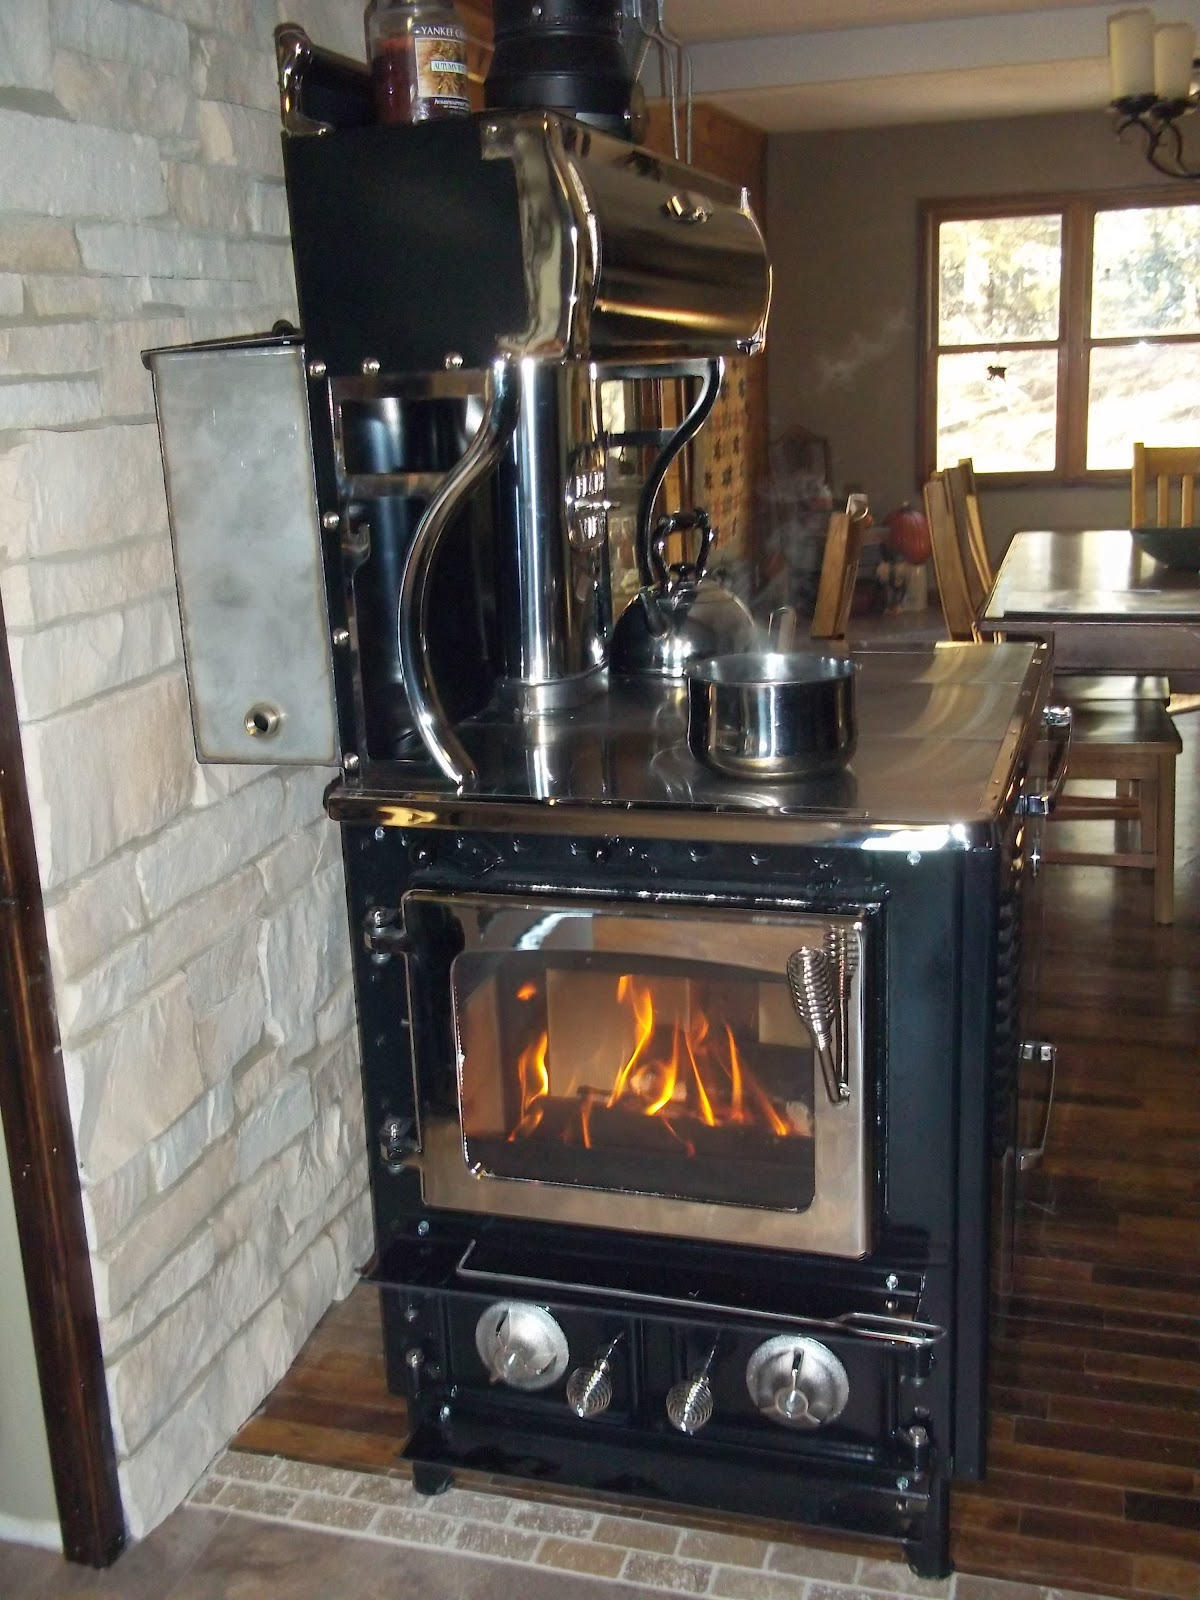 to using a wood stove. I have never lived in a home with a wood stove ...